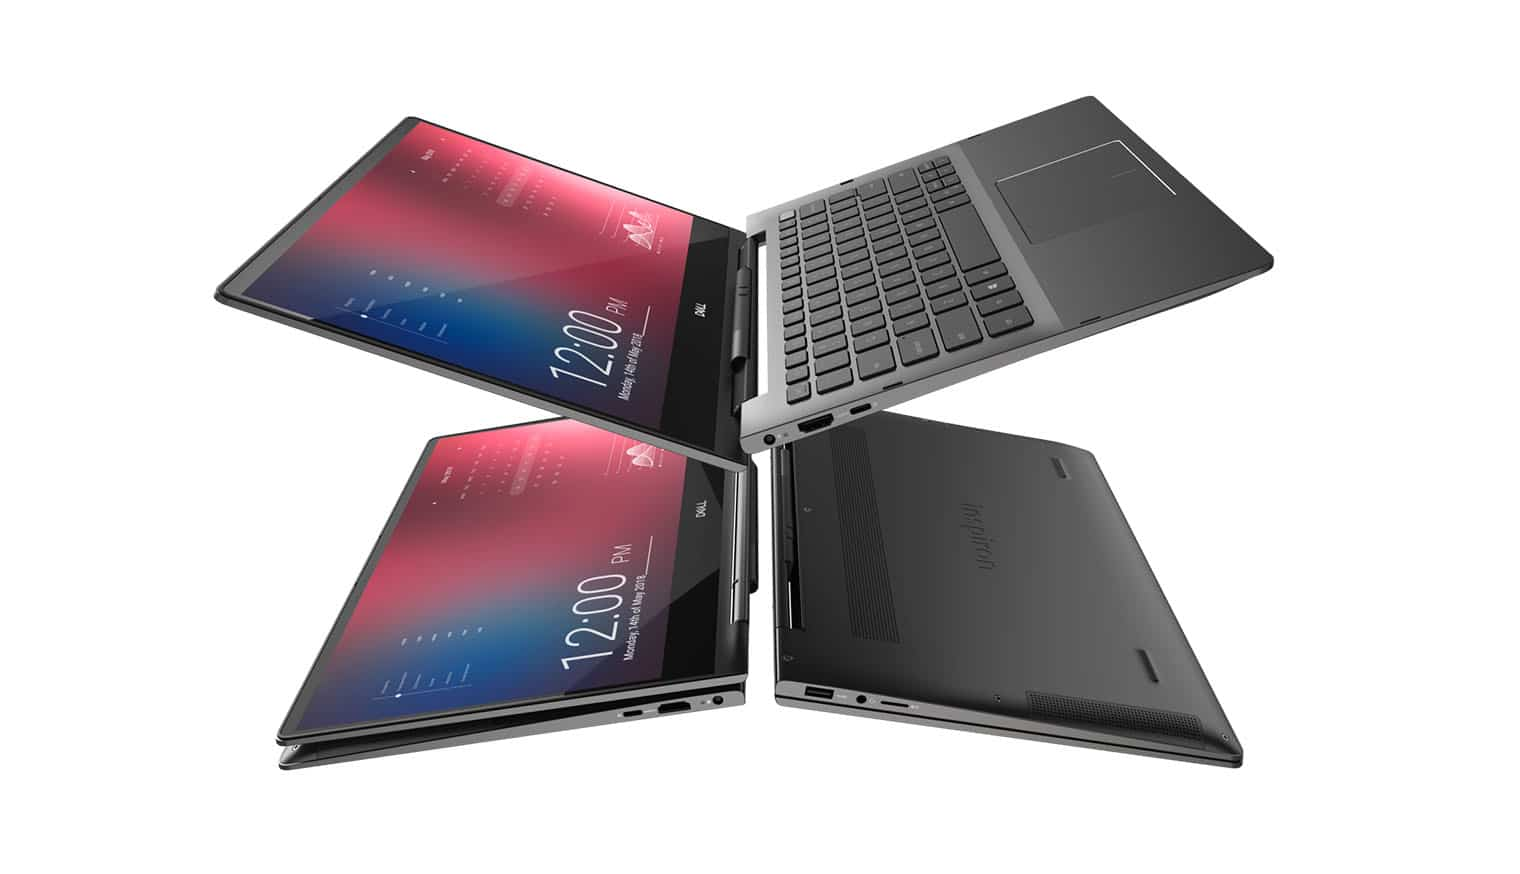 dell inspiron 13 7390 2-in-1 black edition featured